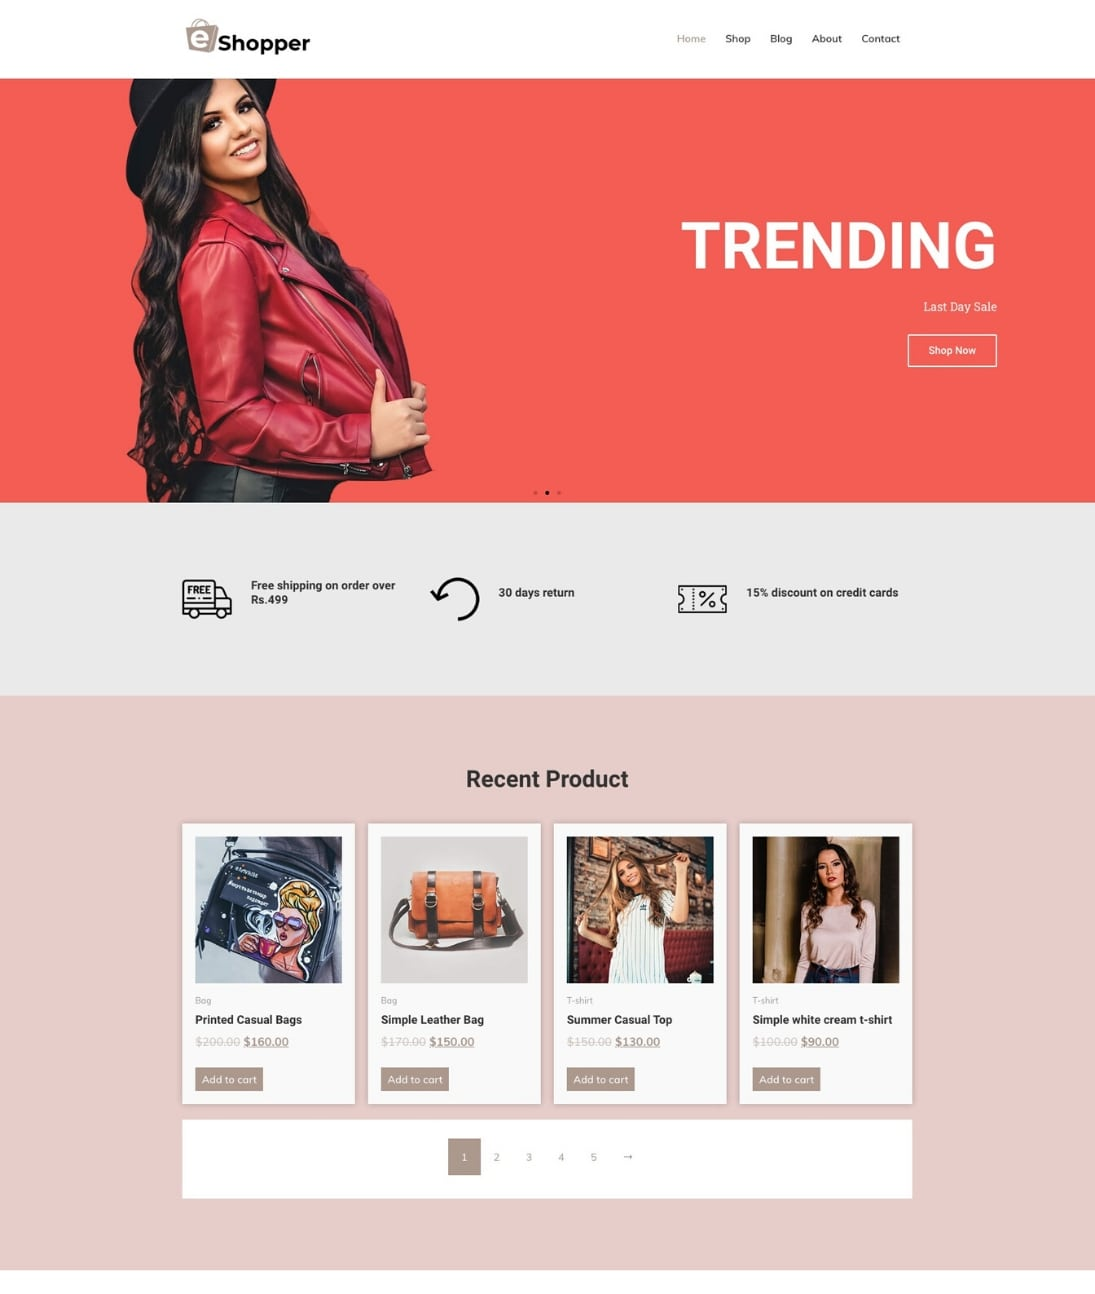 Ecommerce Fashion template by CyberChimps